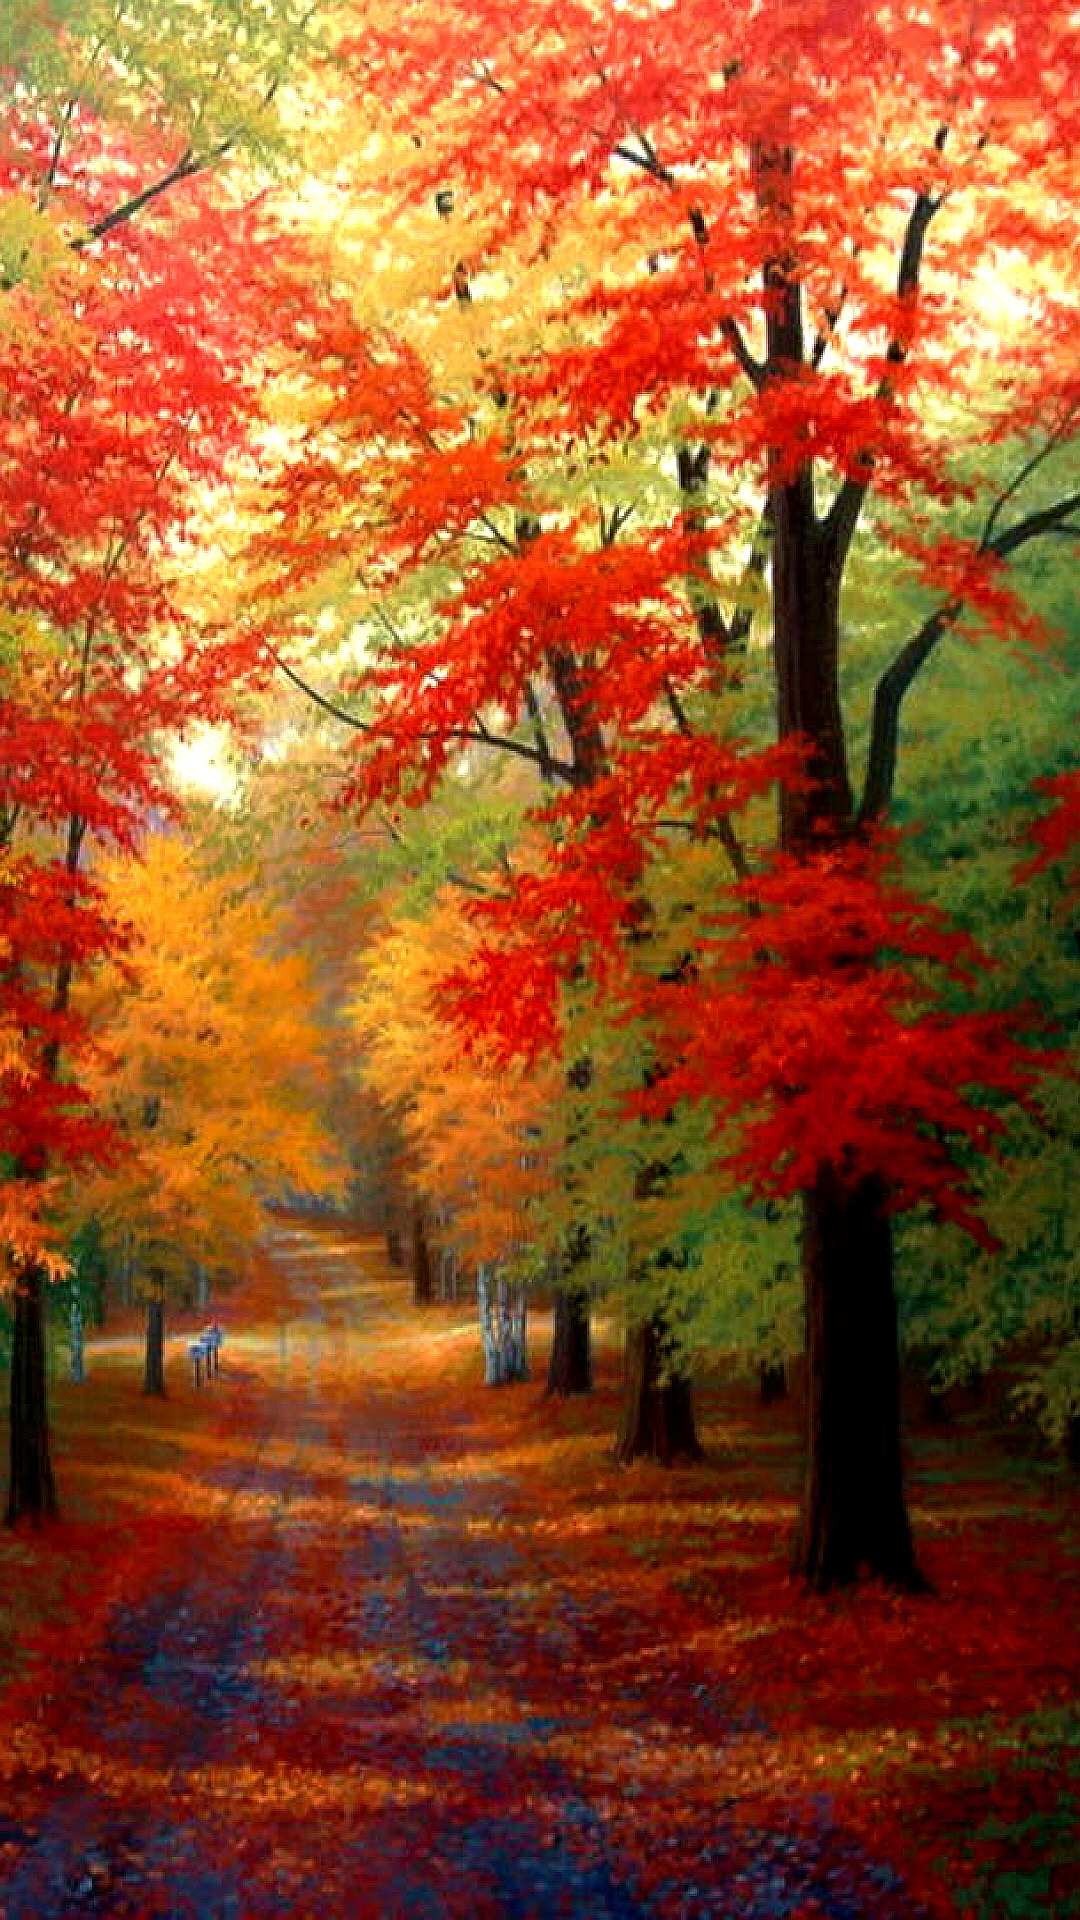 fddaadcaacaa-fall-autumn-scenery-wallpaper-wp3805131